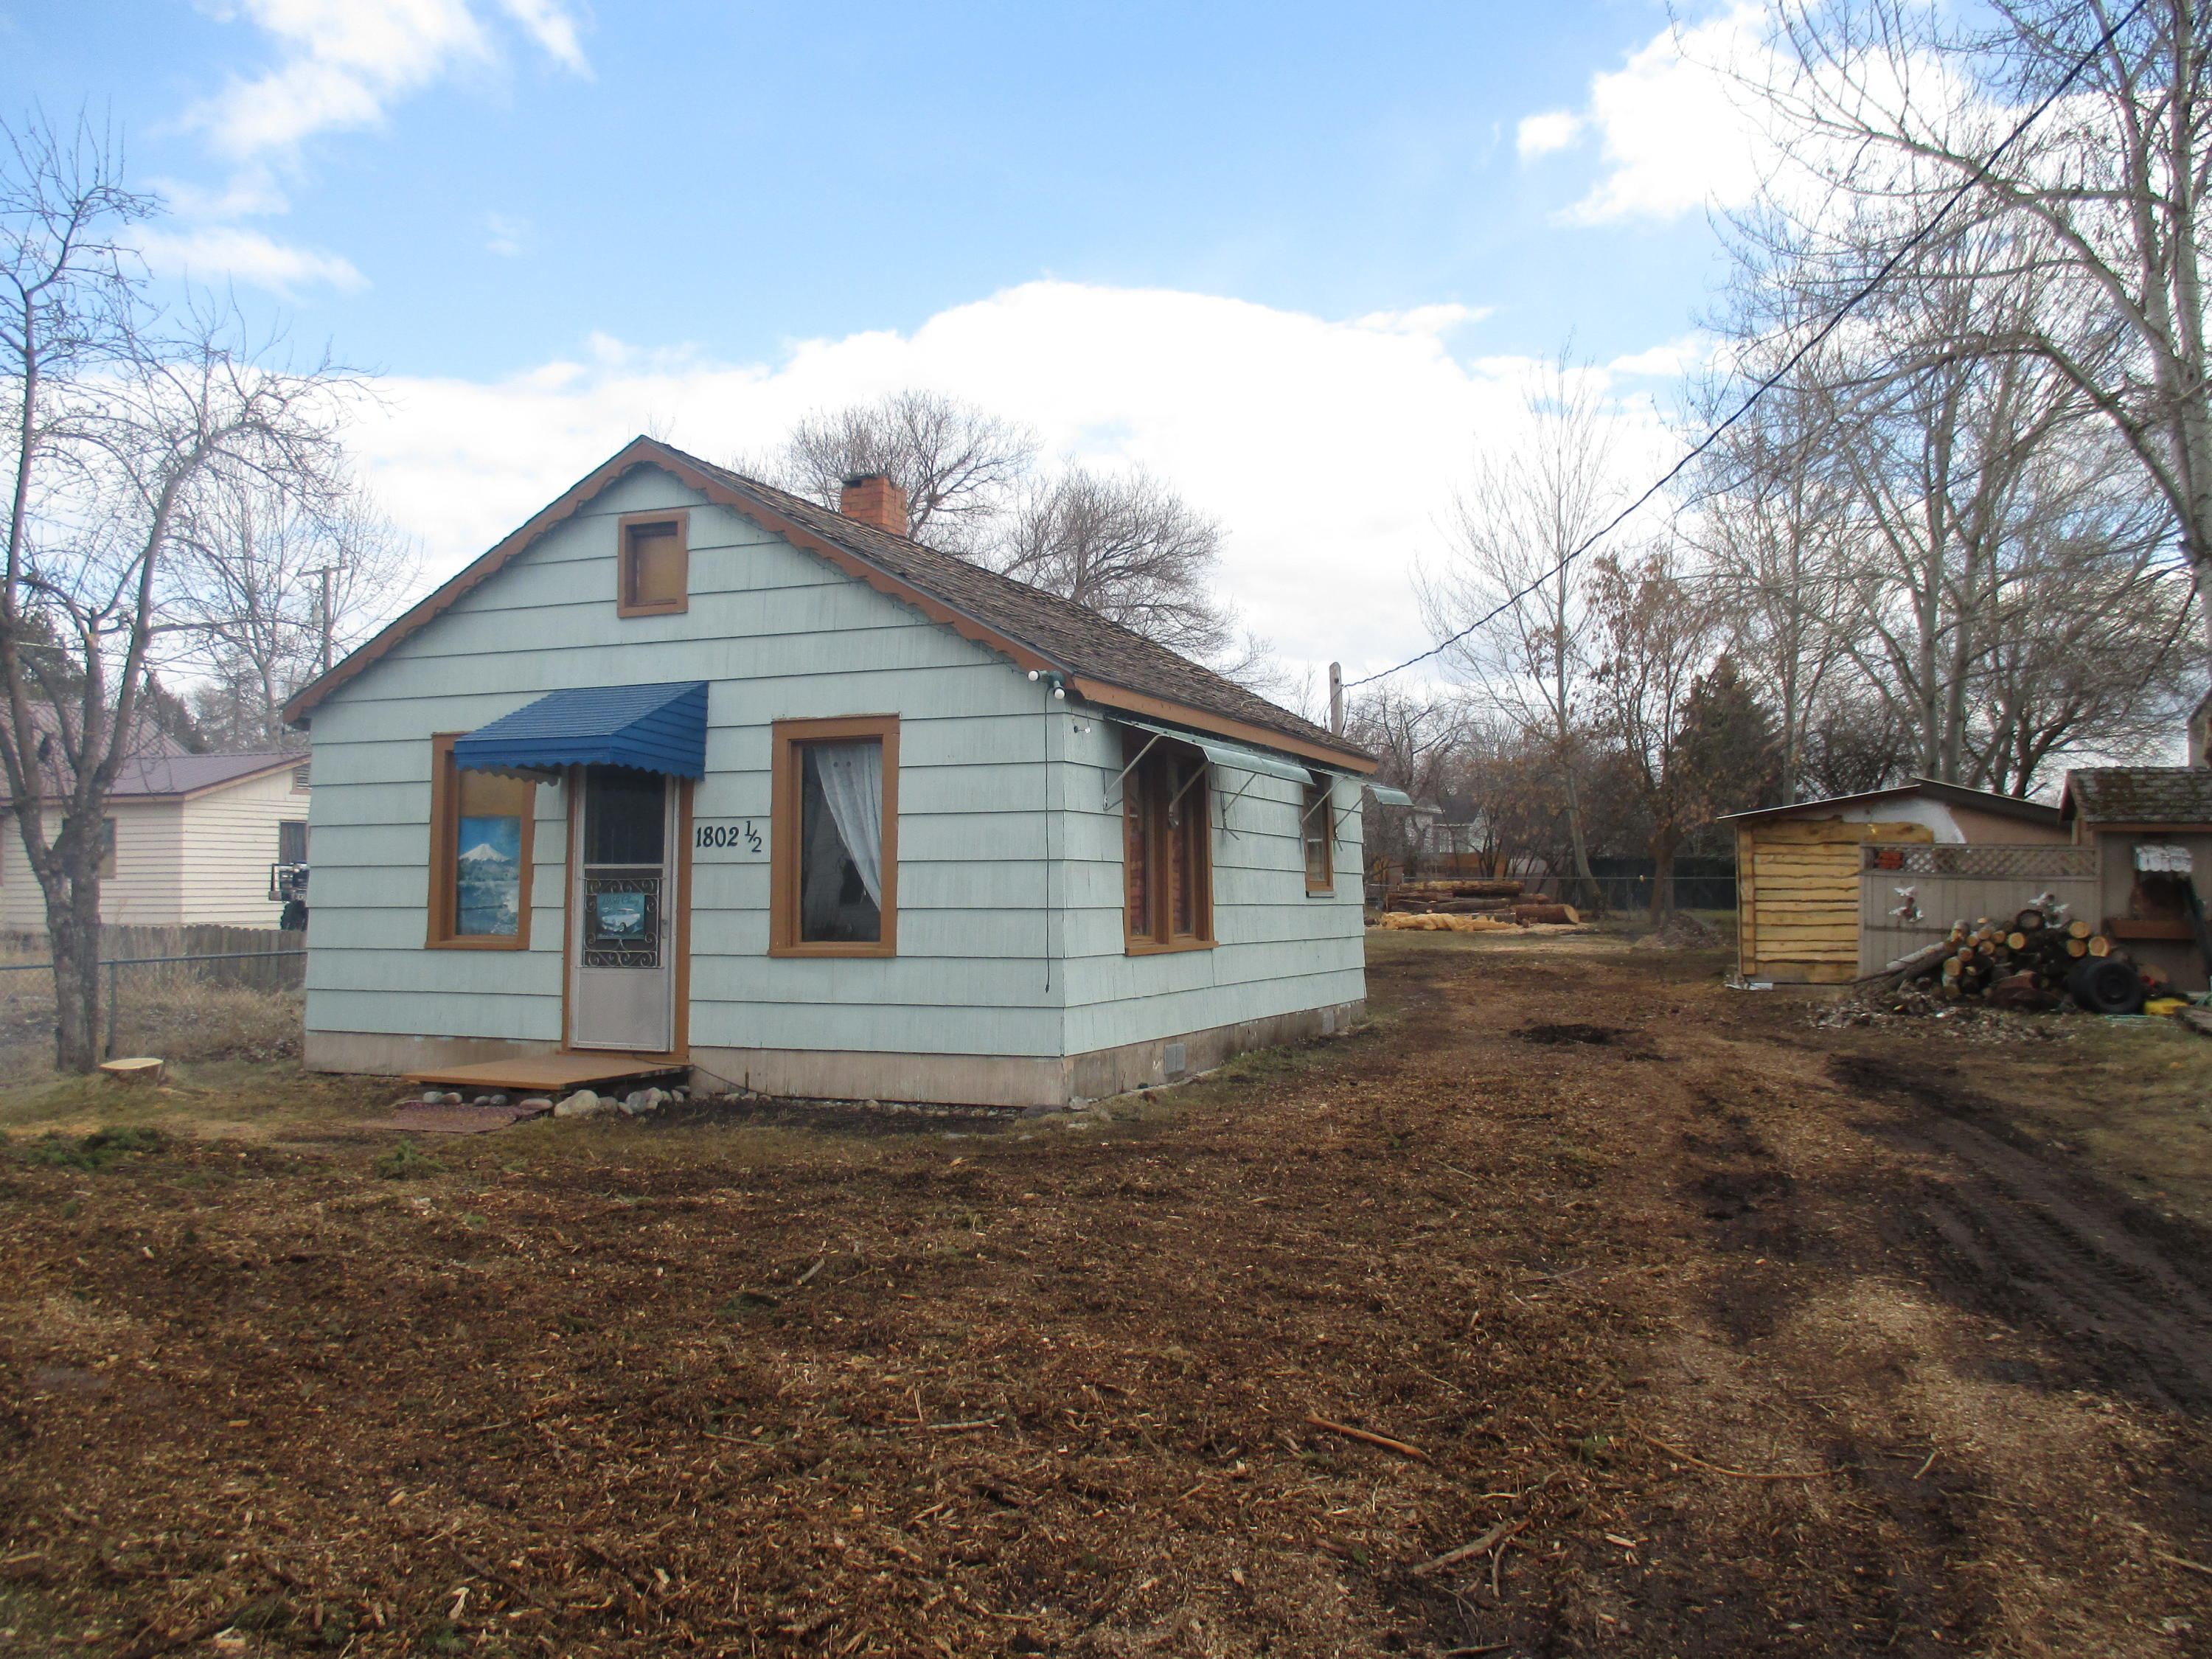 Investors? Builders?  Little home on pier foundation w/several outbuildings including small workshop.  Fenced .2 acre lot.  Zoned RA-1 for many uses. Water & Sewer to property (not piped into house). Bathroom is outhouse. Water spicket also outside.  Seller has means to demolish home for Buyer (negotiable). Call Janeen at 250-1333 or Your Real Estate Professional.